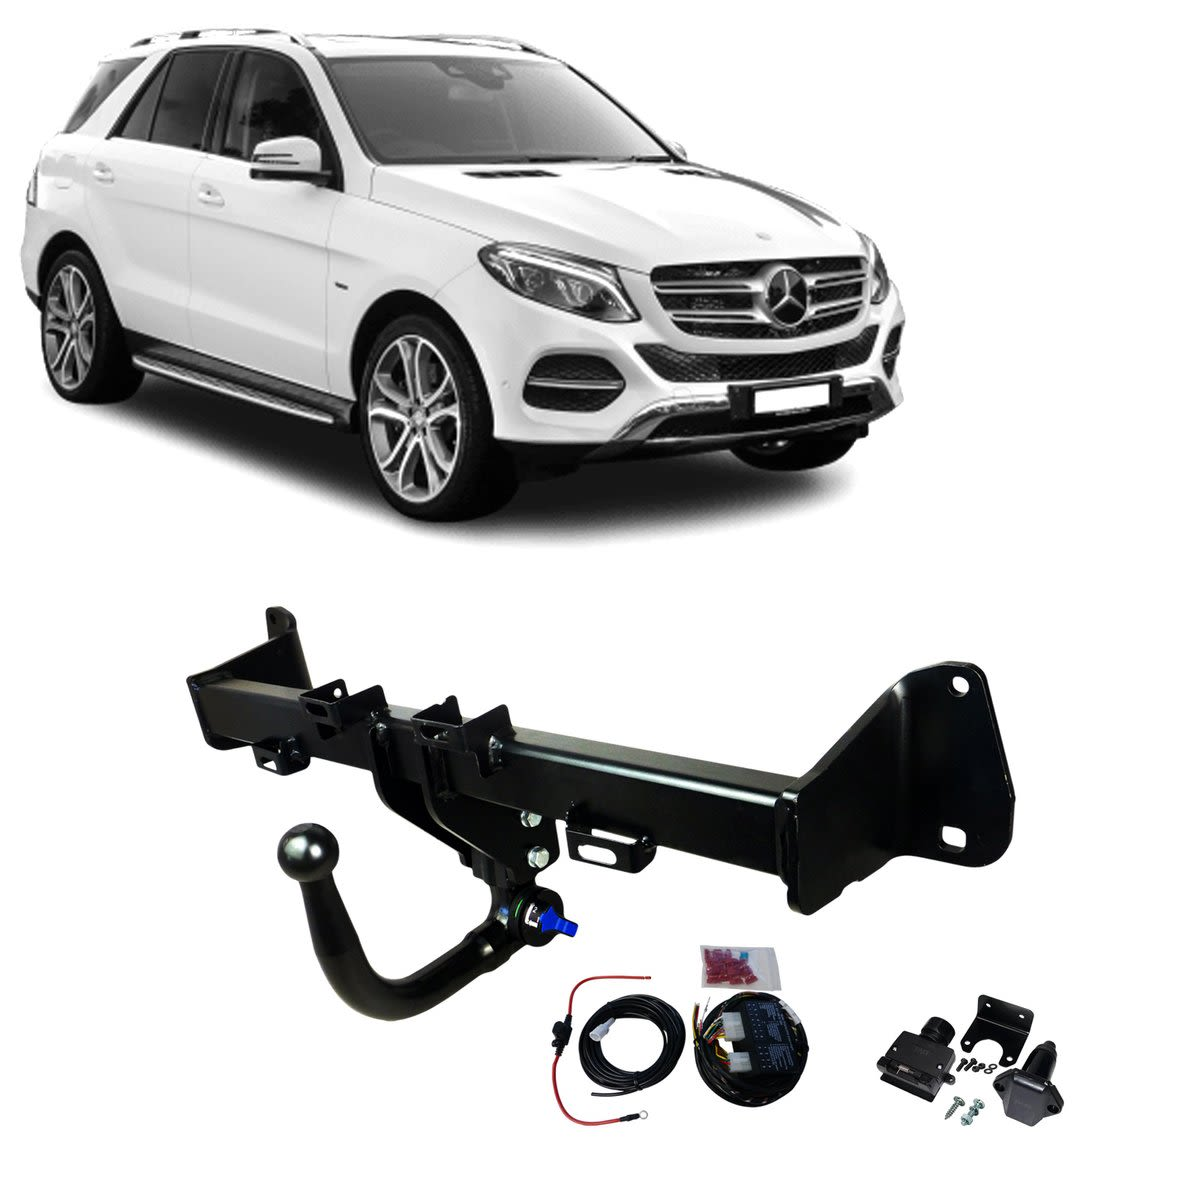 TAG Towbars European Style Tongue to suit MERCEDES-BENZ GLE-CLASS (05/2019 - on)